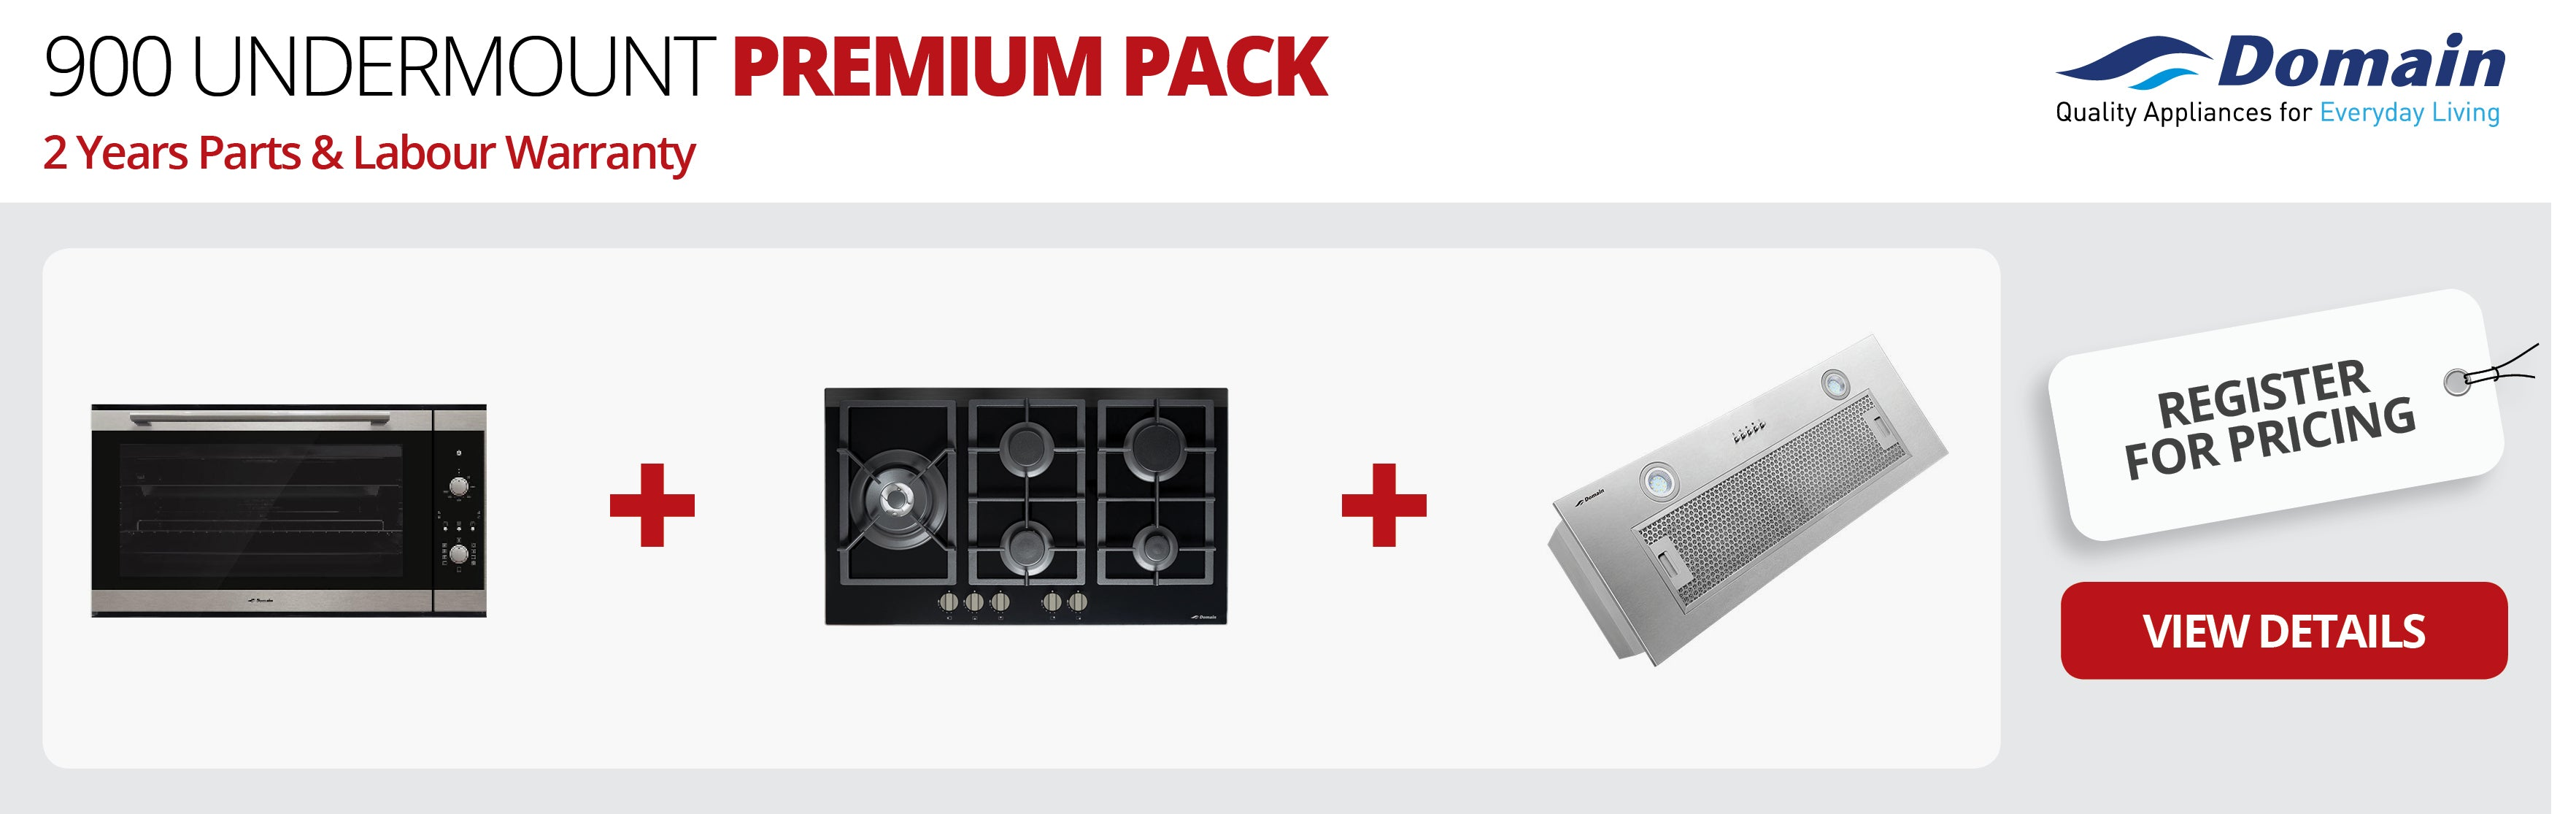 900 UNDERMOUNT Premium Pack